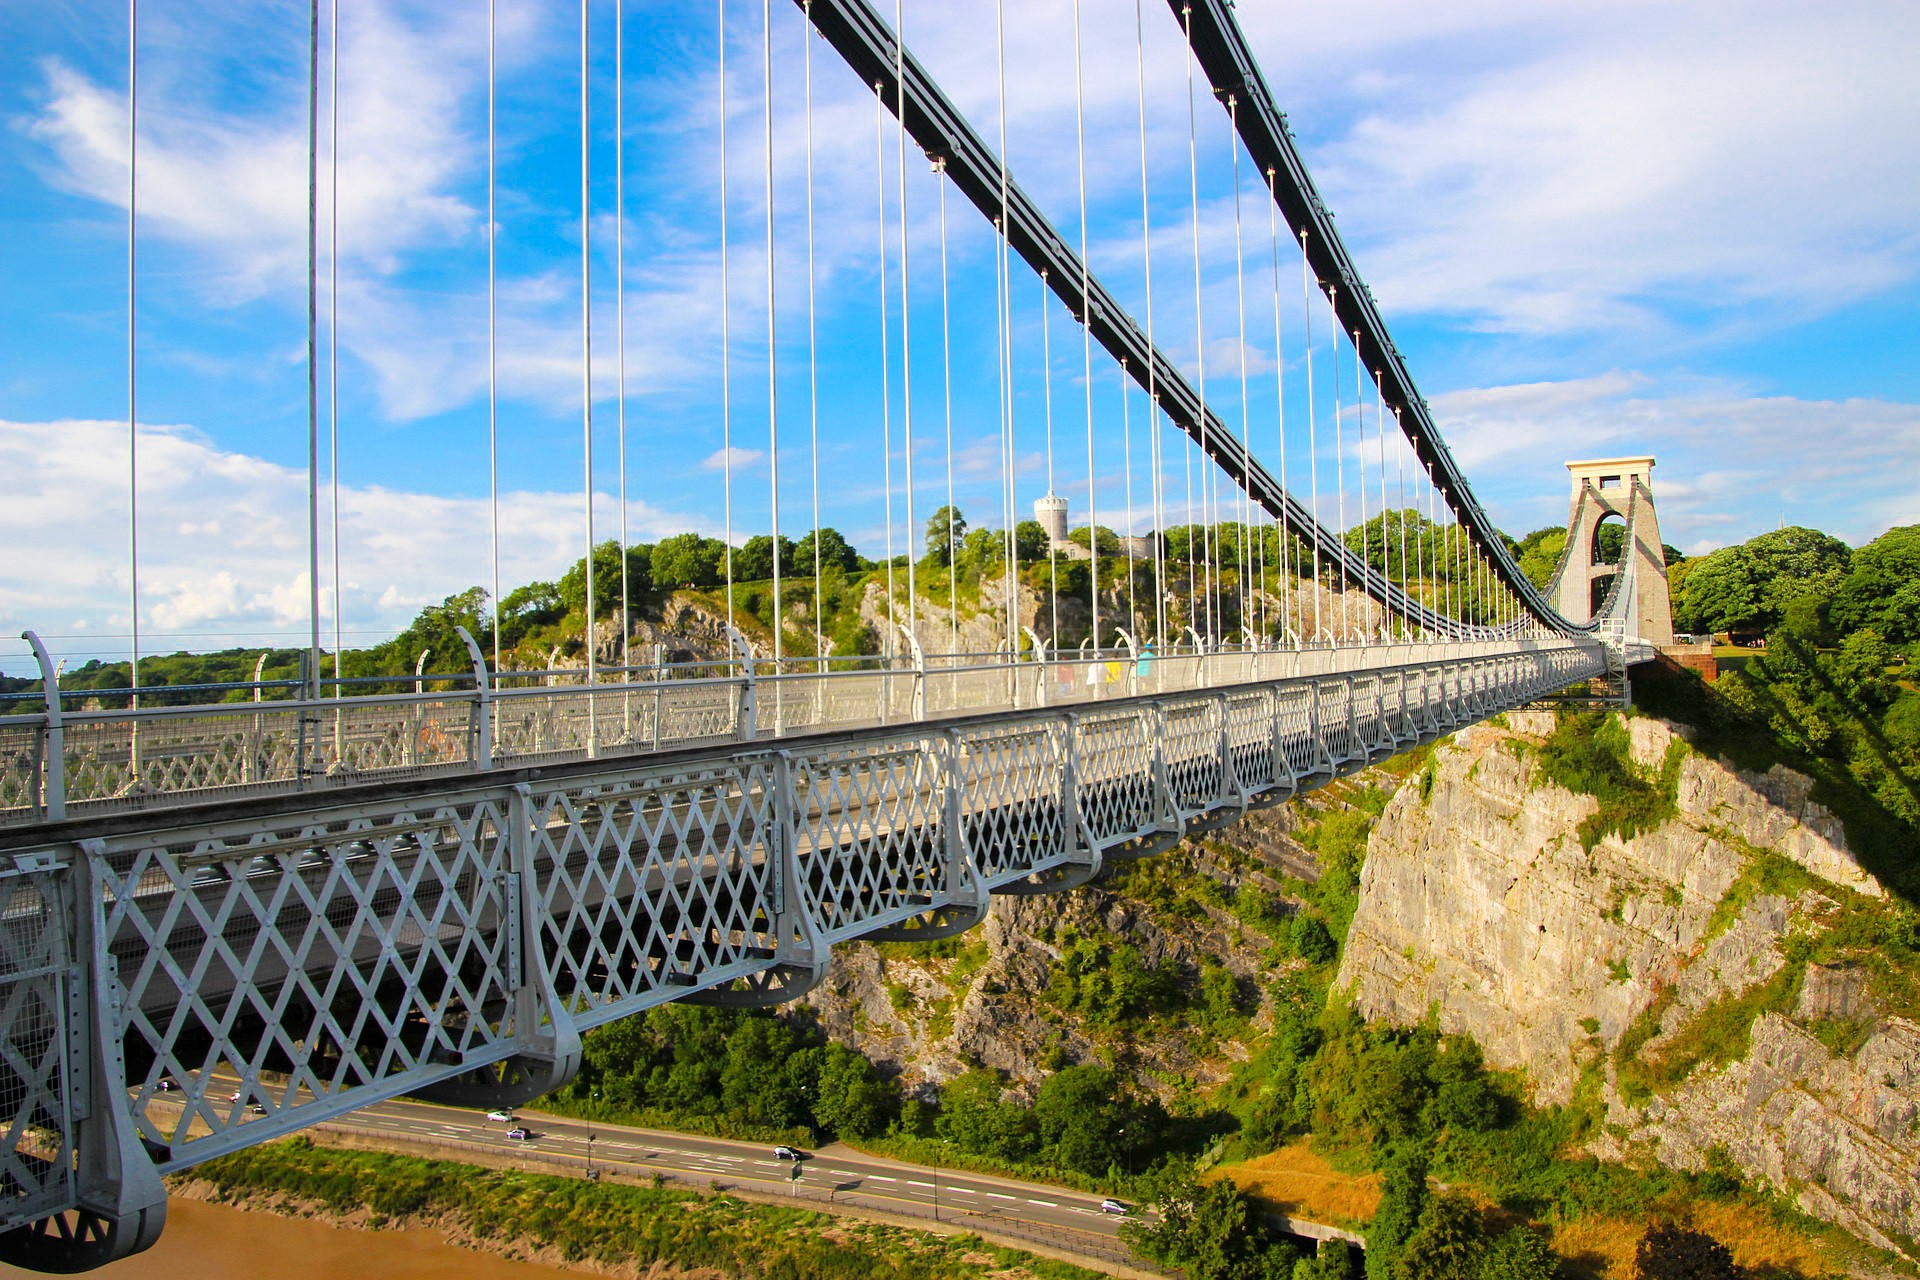 Clifton Suspension Bridge. Bristol. Big bridge. Impressive bridge. Huge bridge. Blue skies. Rocks. Trees. Road. 8 Great Day Trips from Exeter You Can't Miss. Exeter day trips. England, UK. Day trips from Devon. Day trips from Exeter Devon. Day trips from Exeter UK. Day trips from Exeter by train. Day tours from Exeter. Day tours from Exeter UK. Coach day trips from Exeter. Things to do in Exeter. Things to see in Exeter. Things to do in Devon. Exeter travel blog. Exeter travel guide. Bath. Bristol. Cardiff. Plymouth. English Riviera. Jurassic Coast. Dartmoor National Park. Cornwall. Click through to read more...